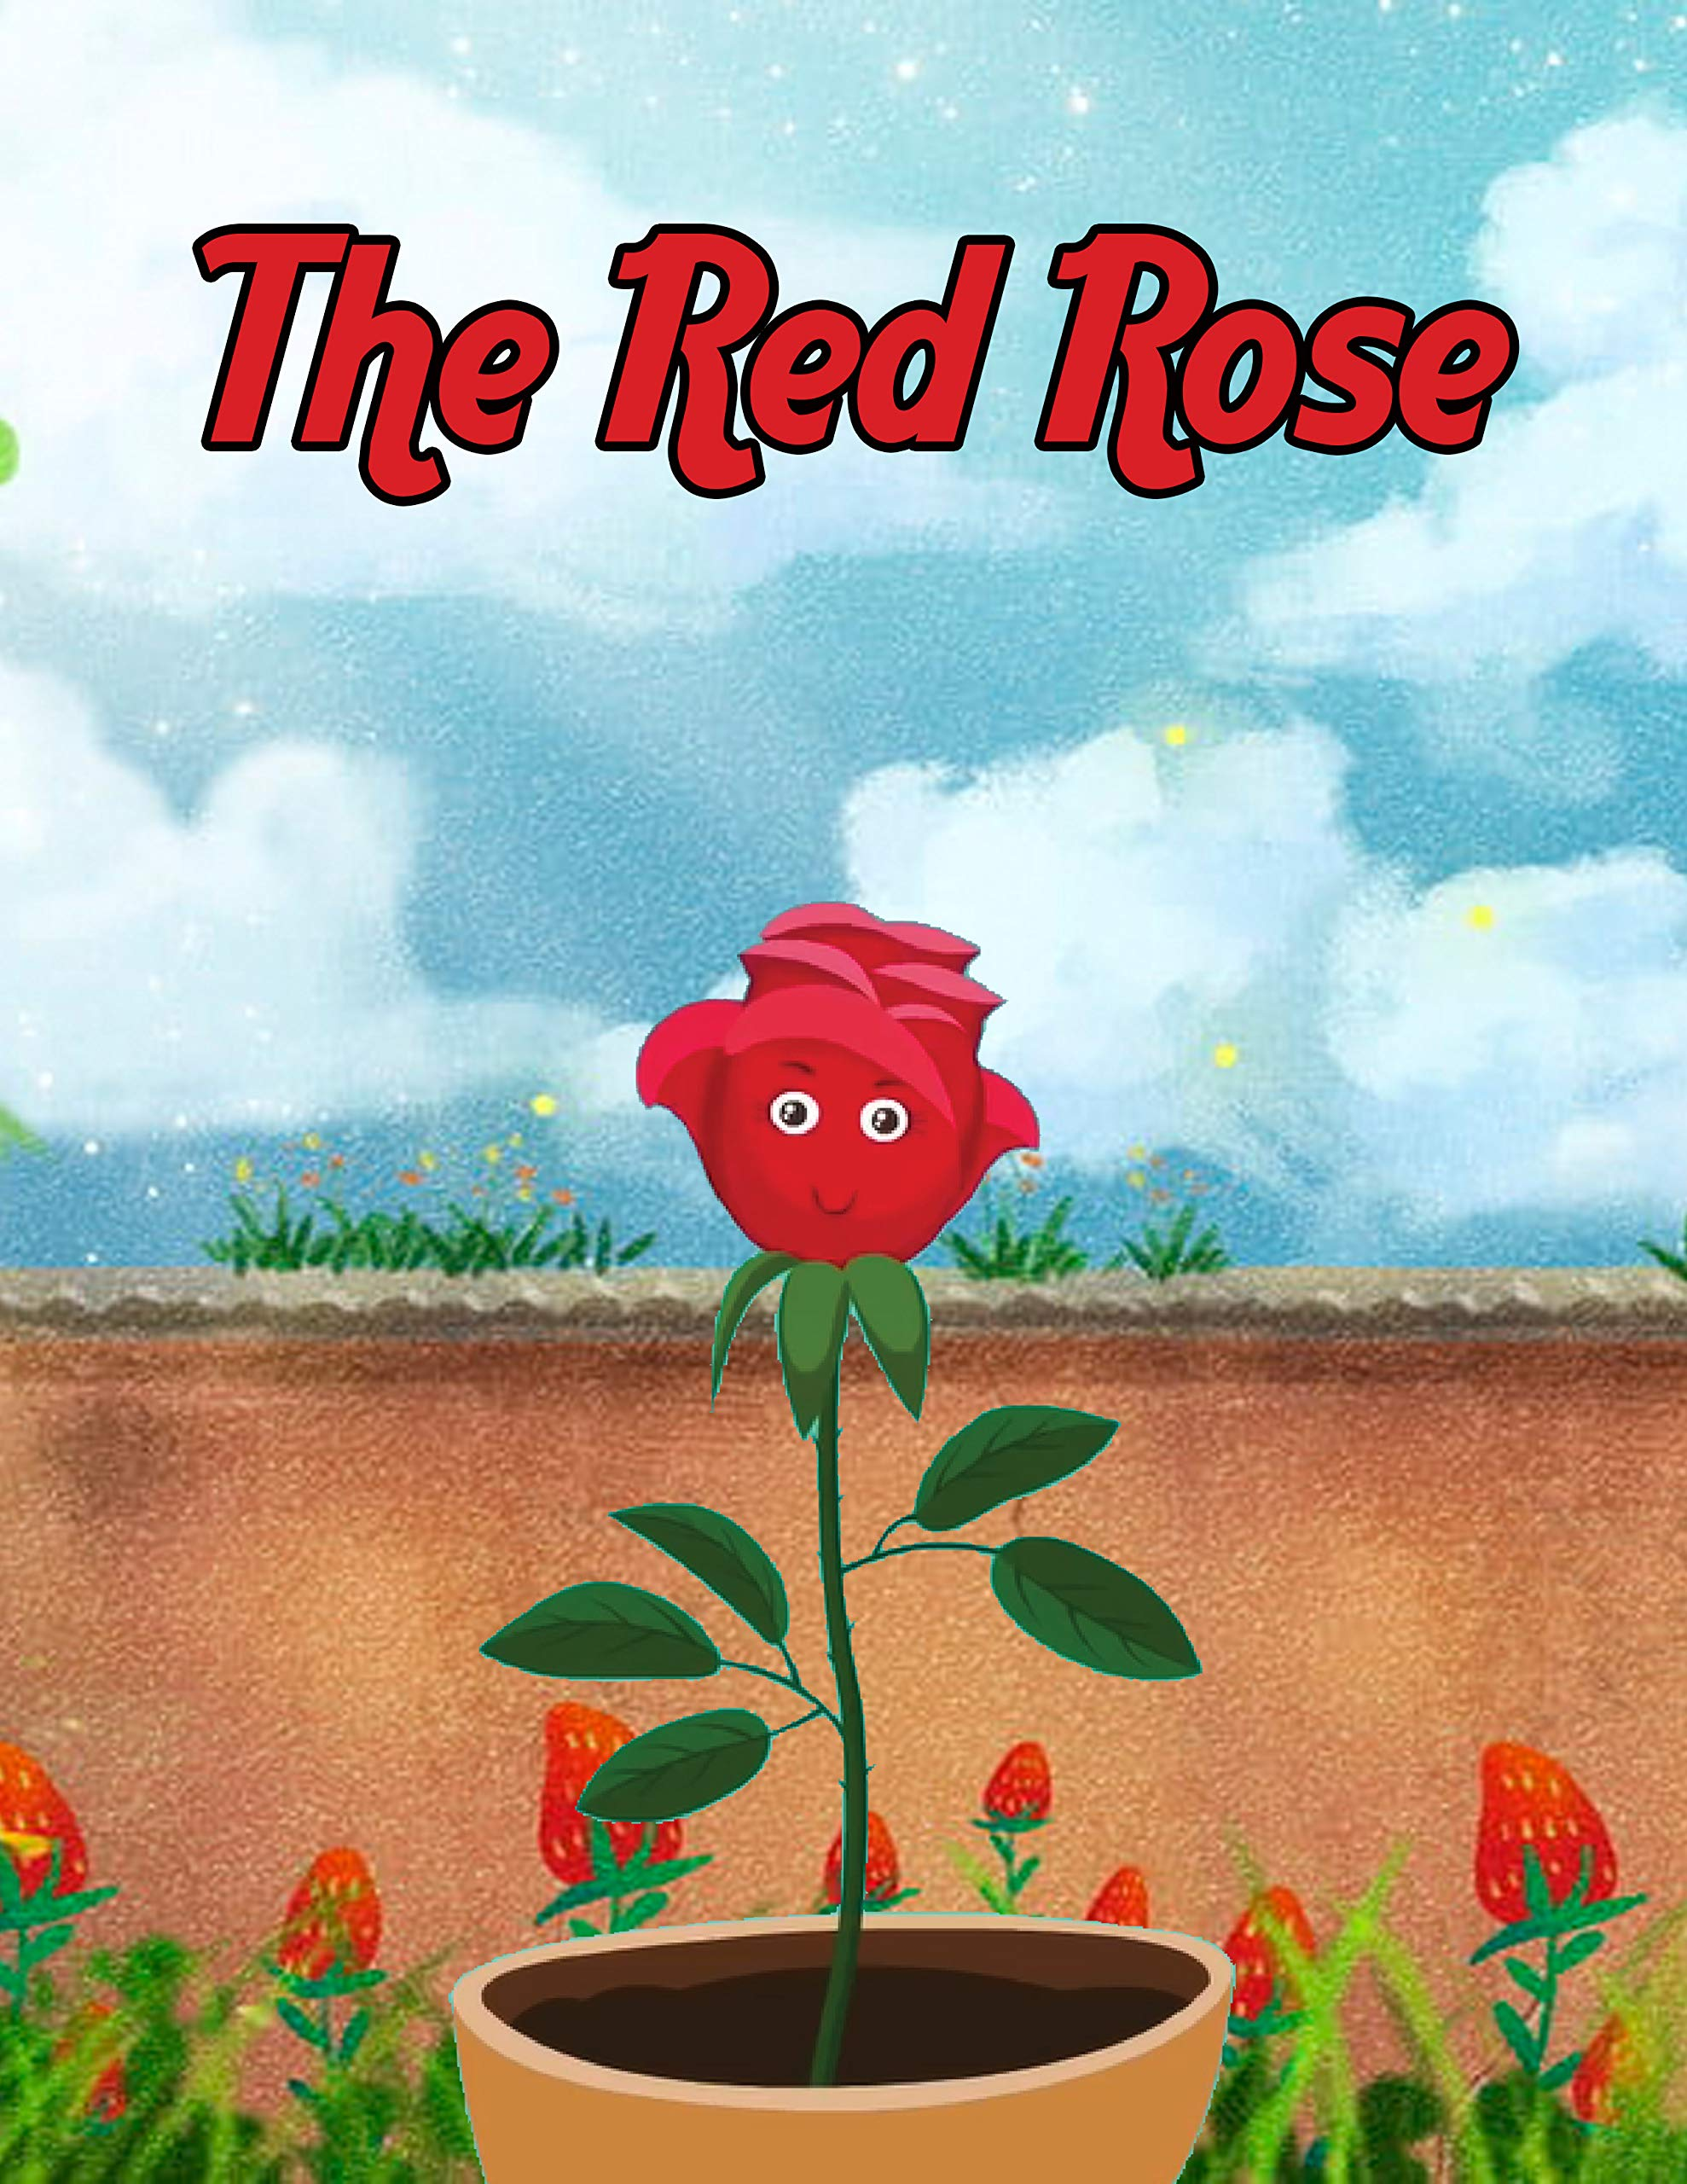 Story Of Red Rose : Bedtime Stories to Your Kids | Moral Stories and Bedtime Stories For Kids: Stories for Teenagers